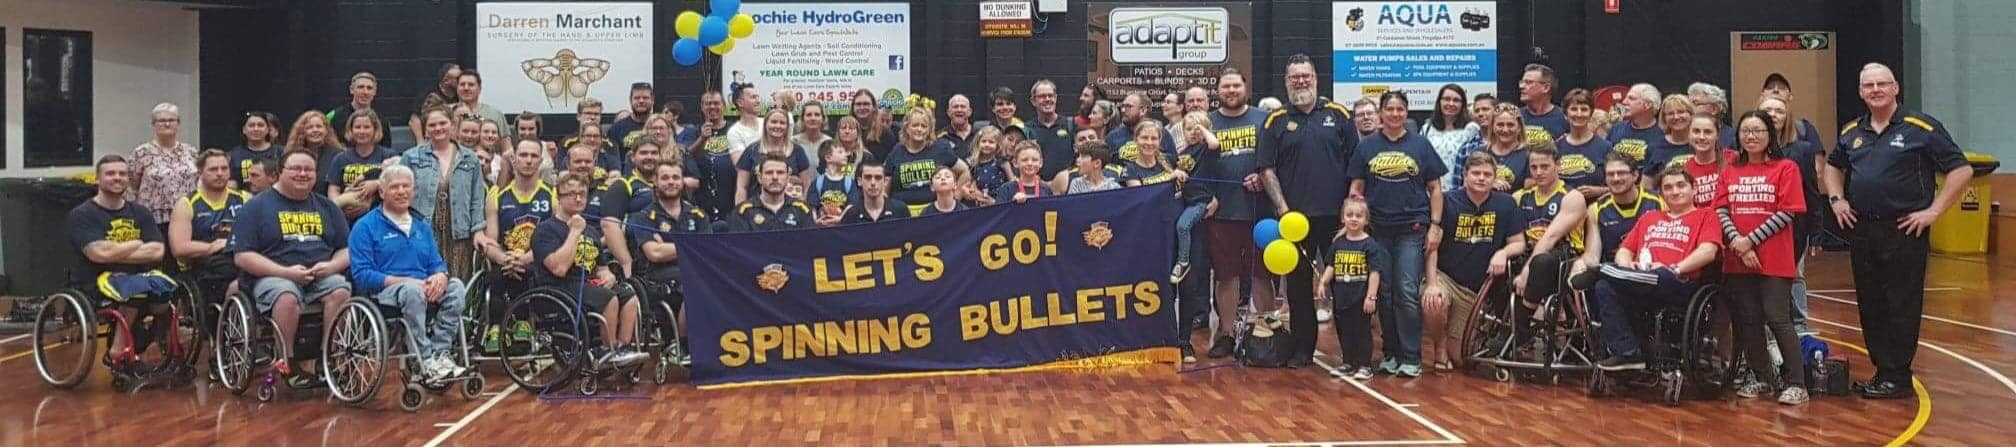 The Spinning Bullets journey through to 2019 NWBL finals